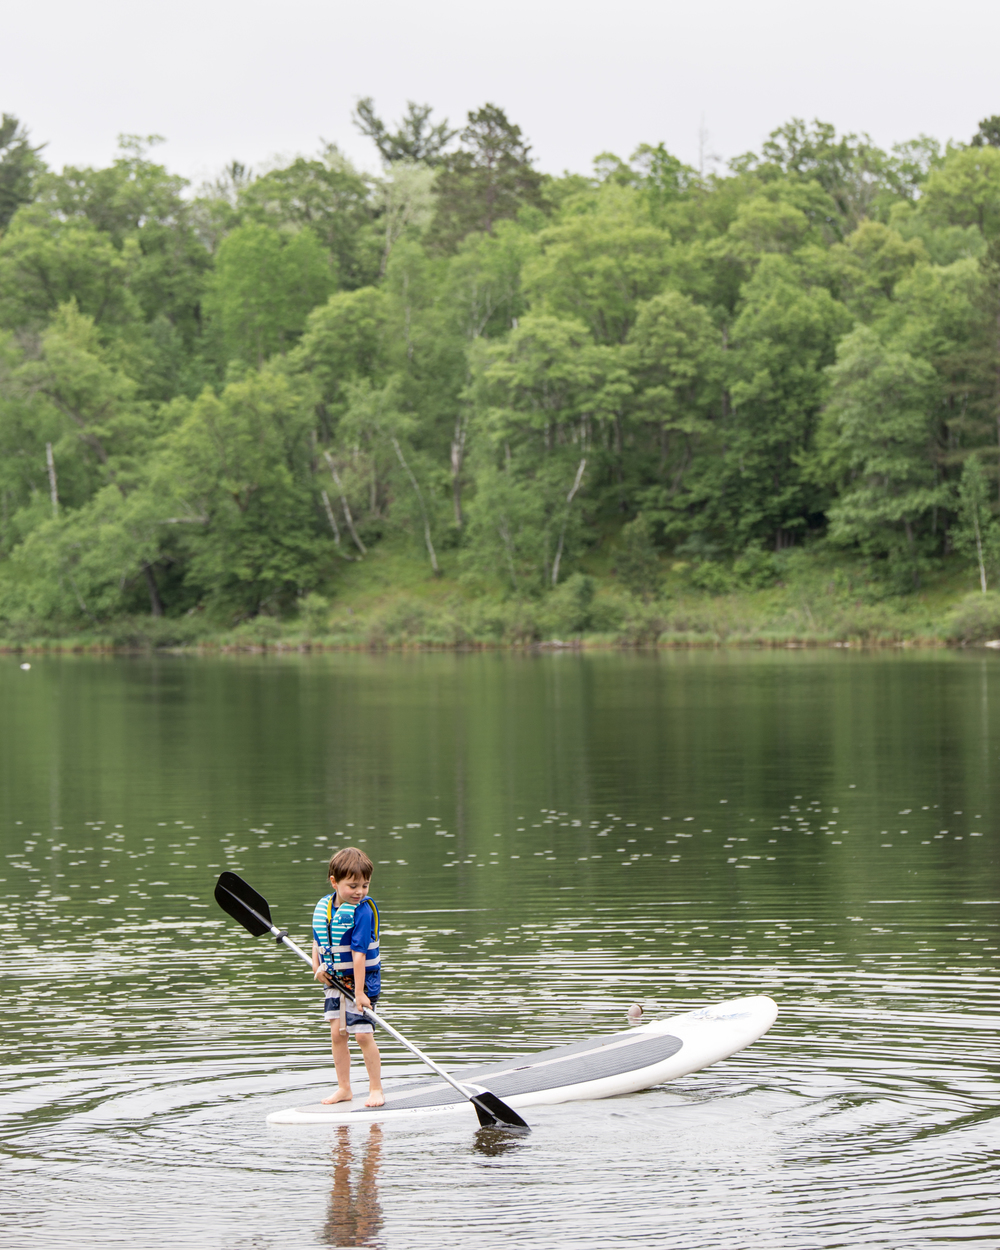 It was hilarious to watch Arlo jump on a SUP for the first time and cruise away like he had been doing it for years. The beach area also had a basketball hoop, some swings, a fire circle and even a bath house with fresh towels, running water and a toilet.